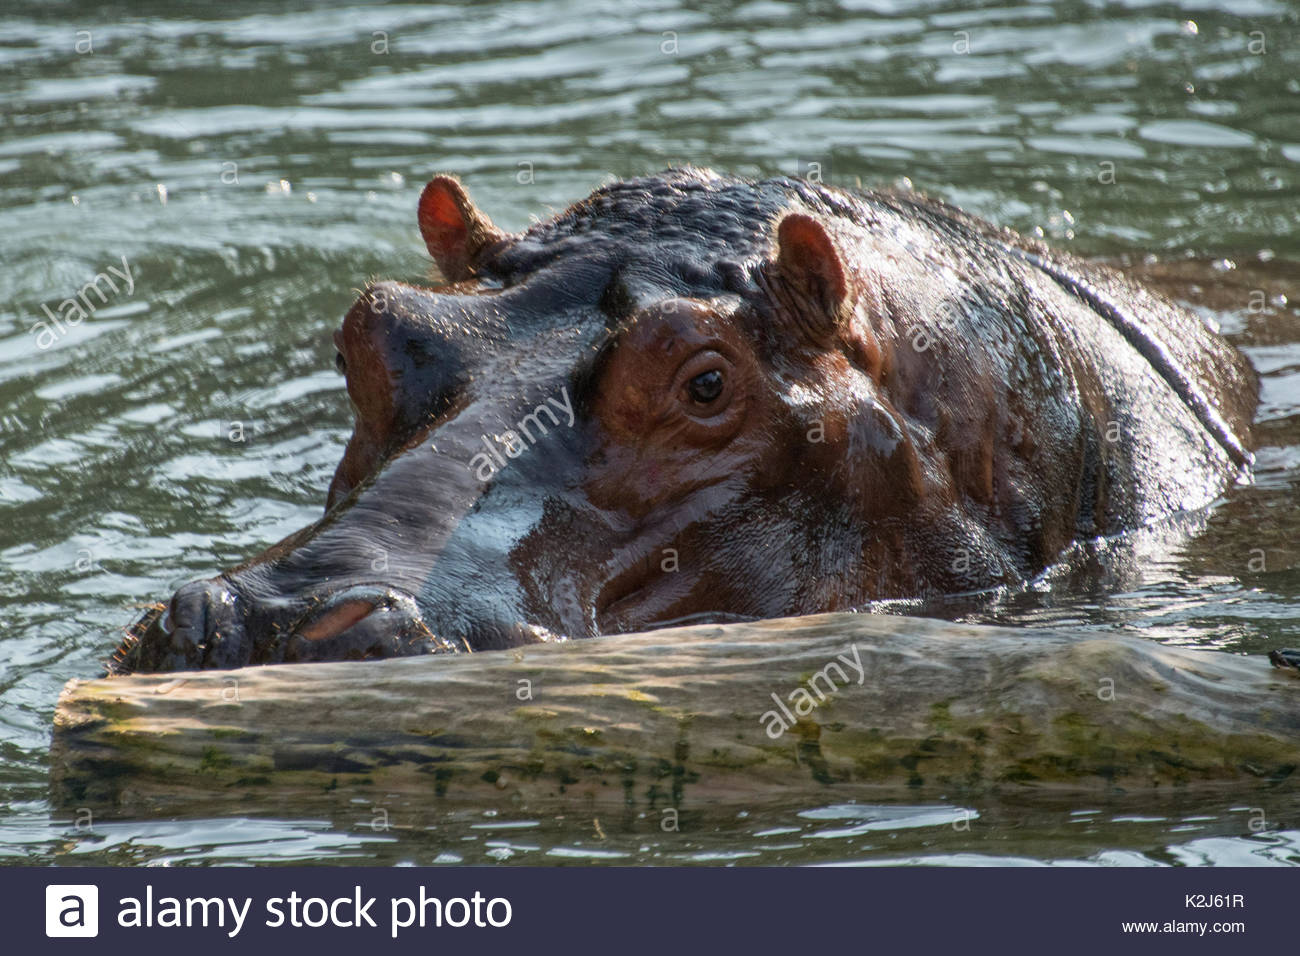 The common hippopotamus swimming in the water of a pond.  The Hippopotamus amphibius, or hippo, is a large, mostly herbivorous and aggressive mammal - Stock Image